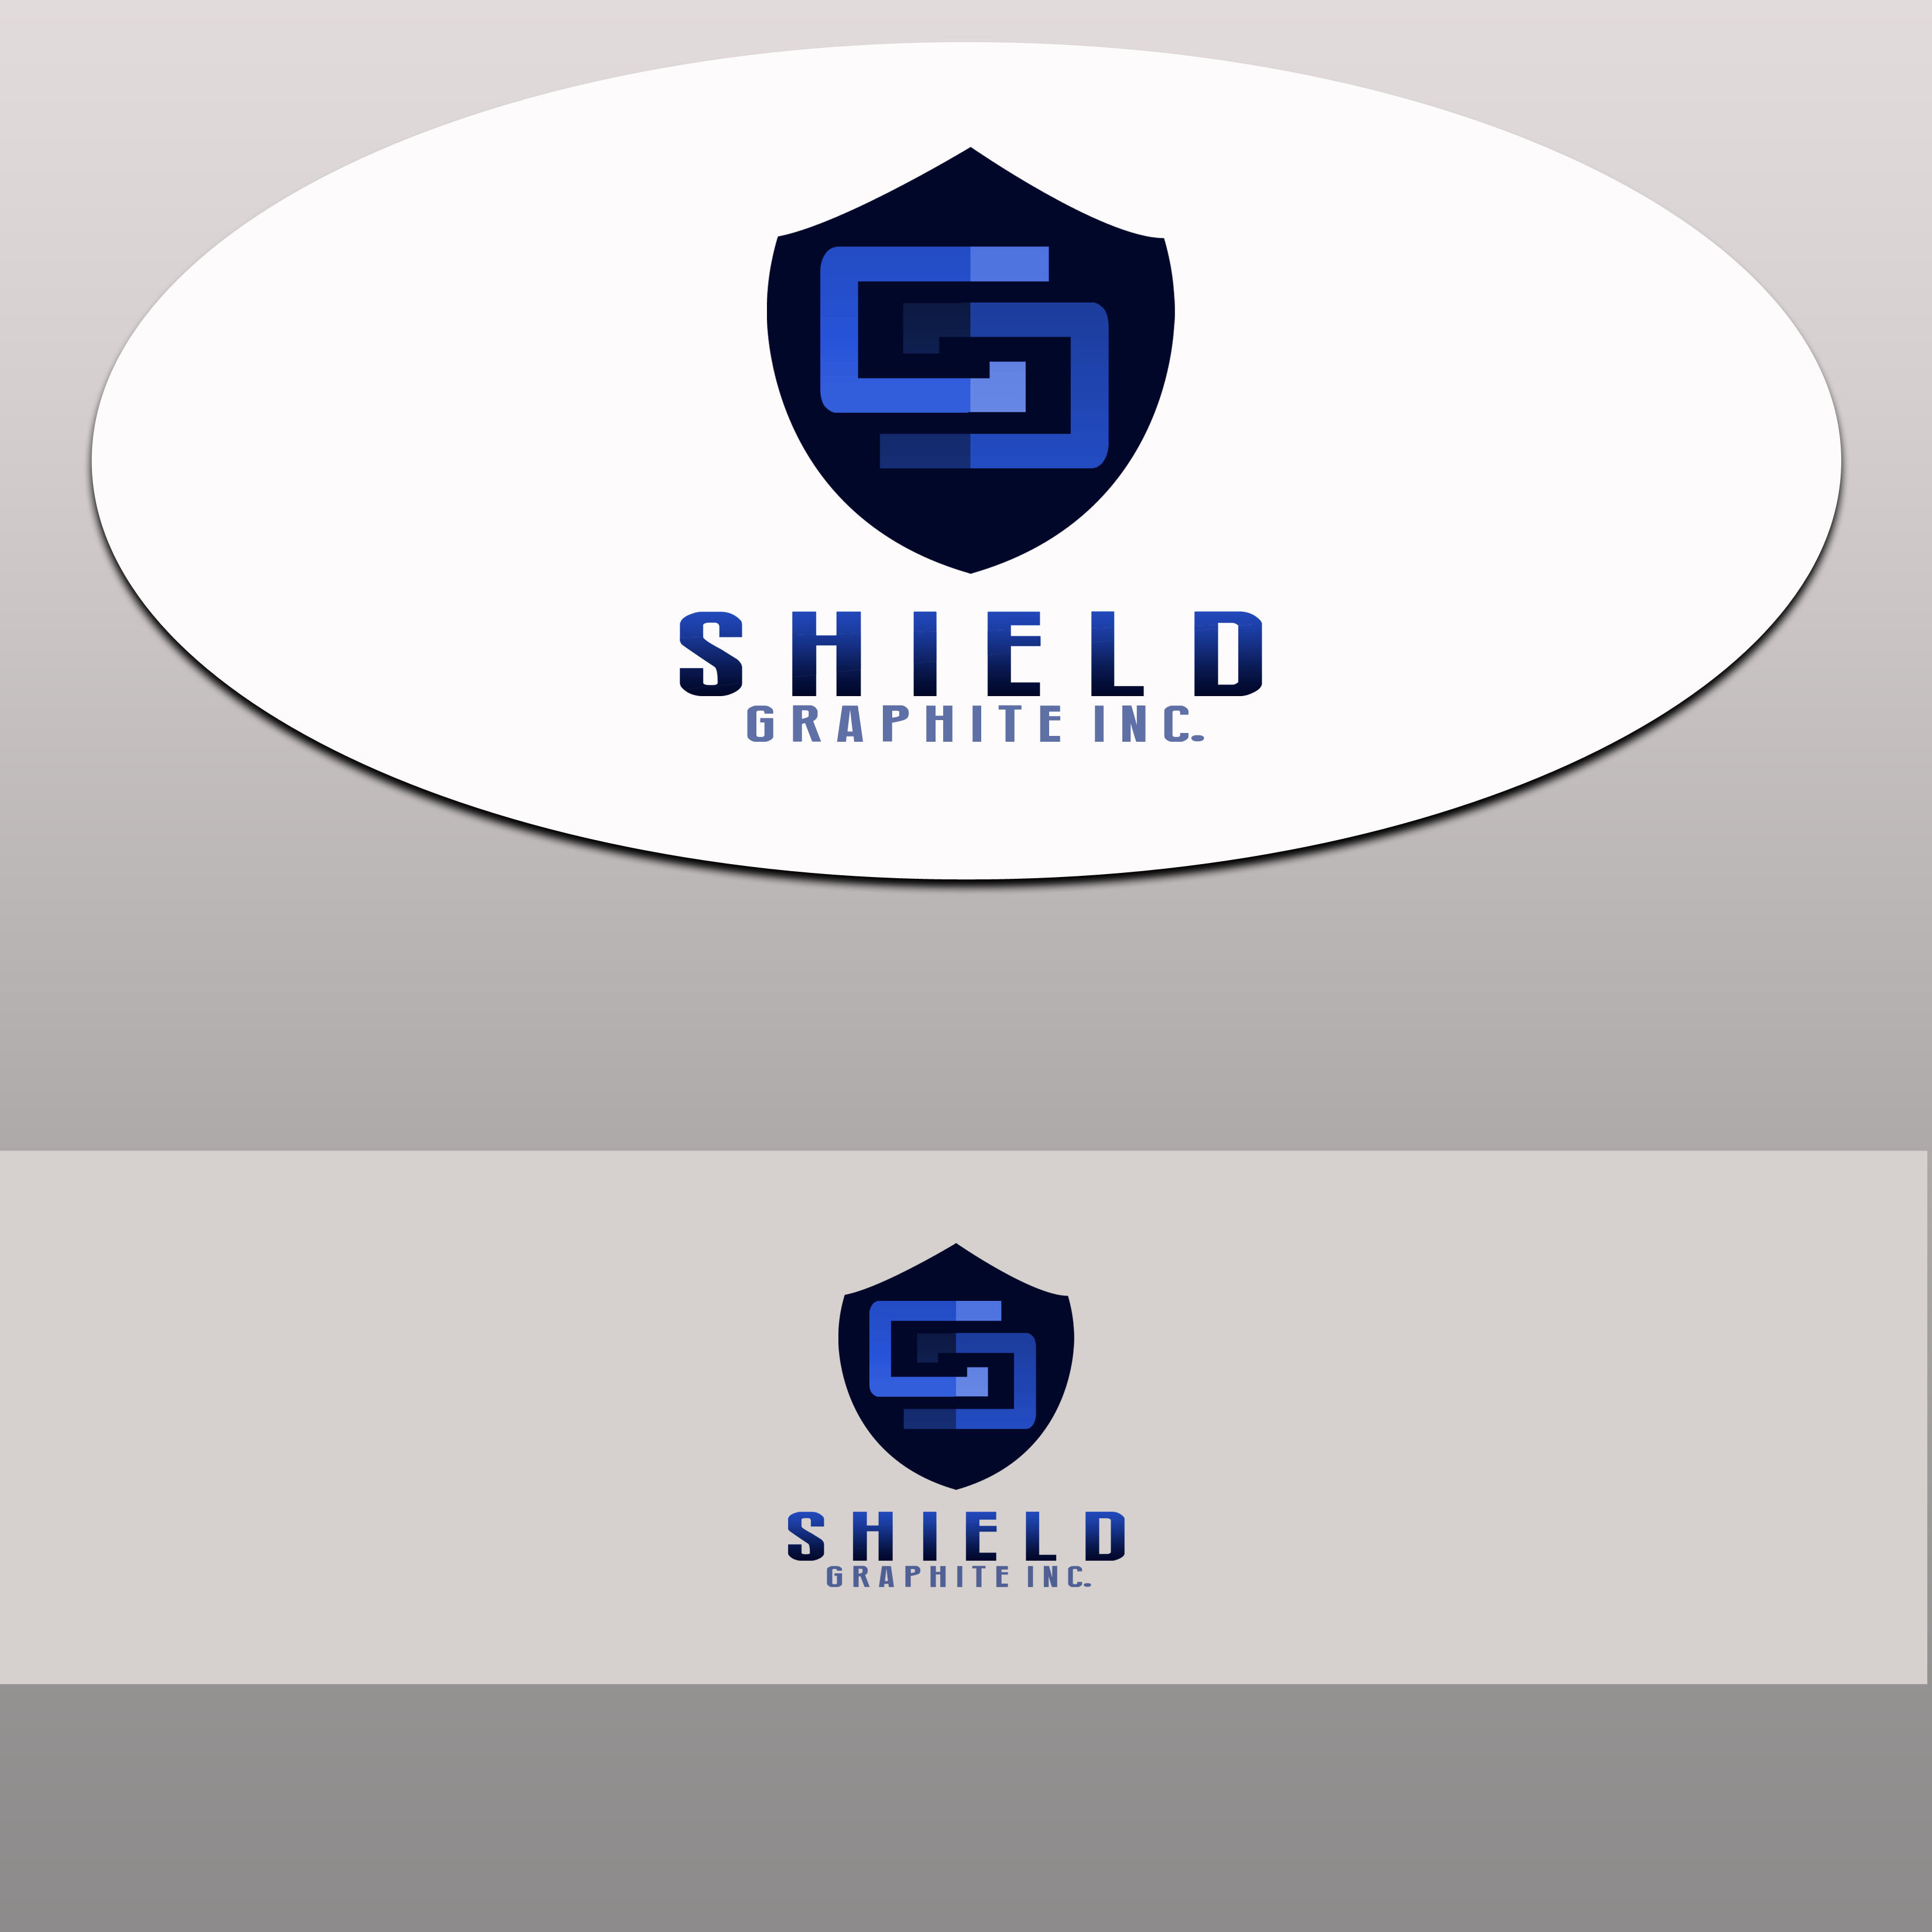 Logo Design by Allan Esclamado - Entry No. 33 in the Logo Design Contest Imaginative Logo Design for Shield Graphite Inc..